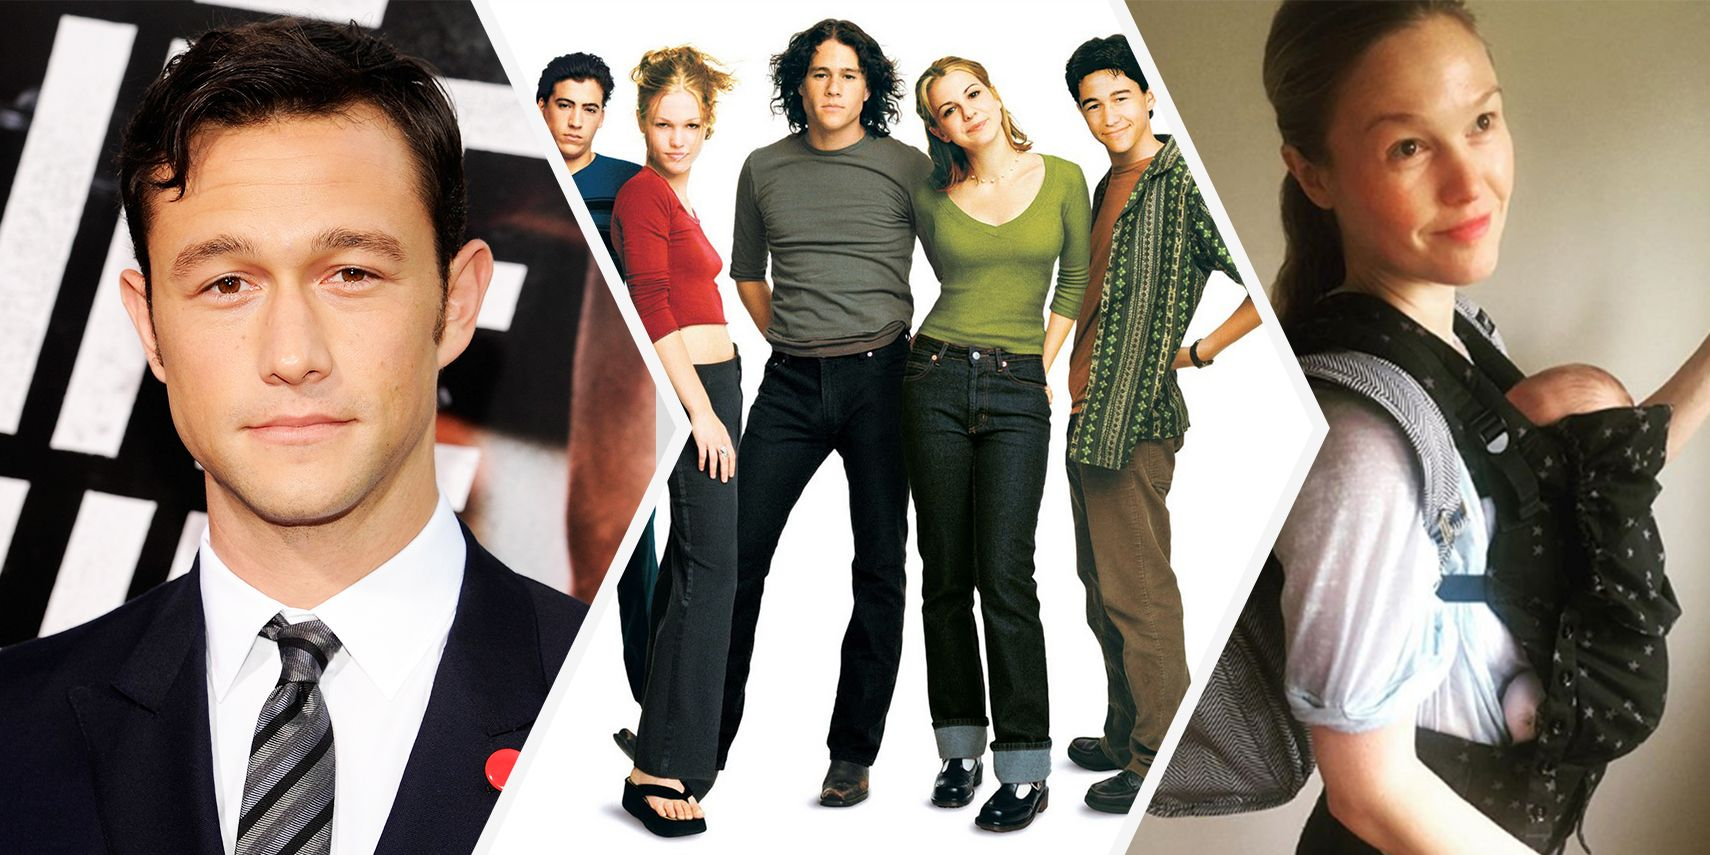 10 Things I Hate About You Actors: 10 Things I Hate About You: What The Cast Looked Like In